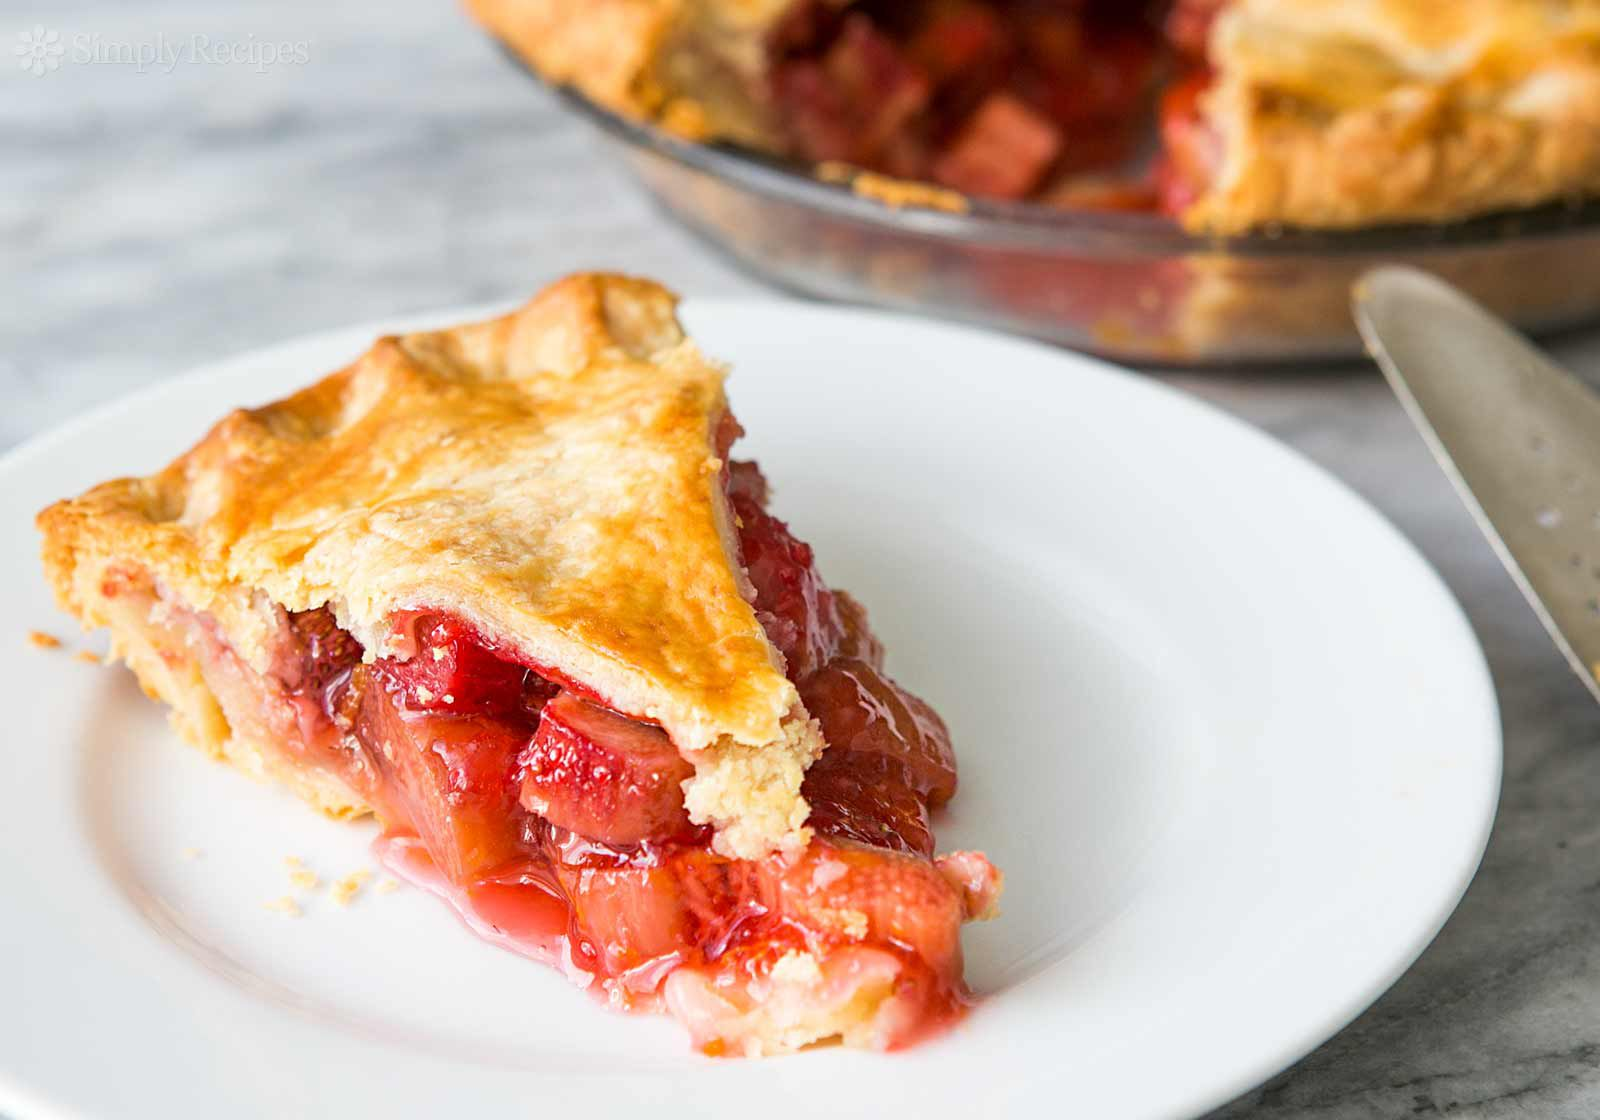 A perfect slice of the best Strawberry Rhubarb Pie